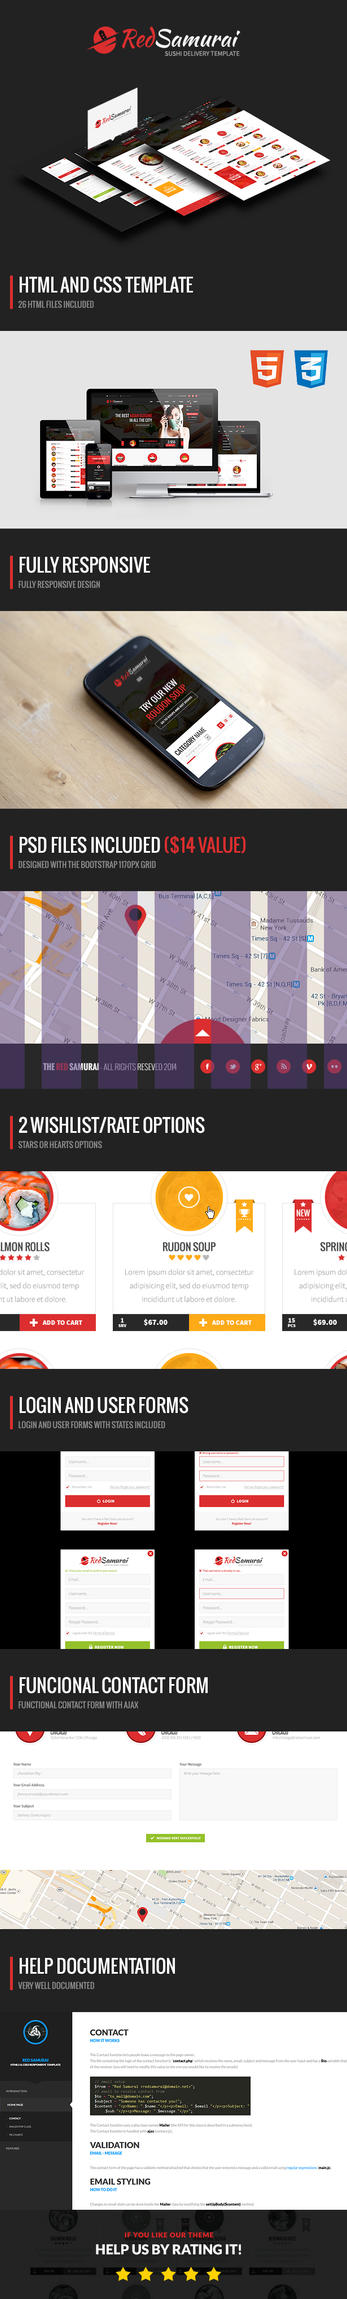 Red Samurai HTML5 and CSS3 Responsive Template by odindesign